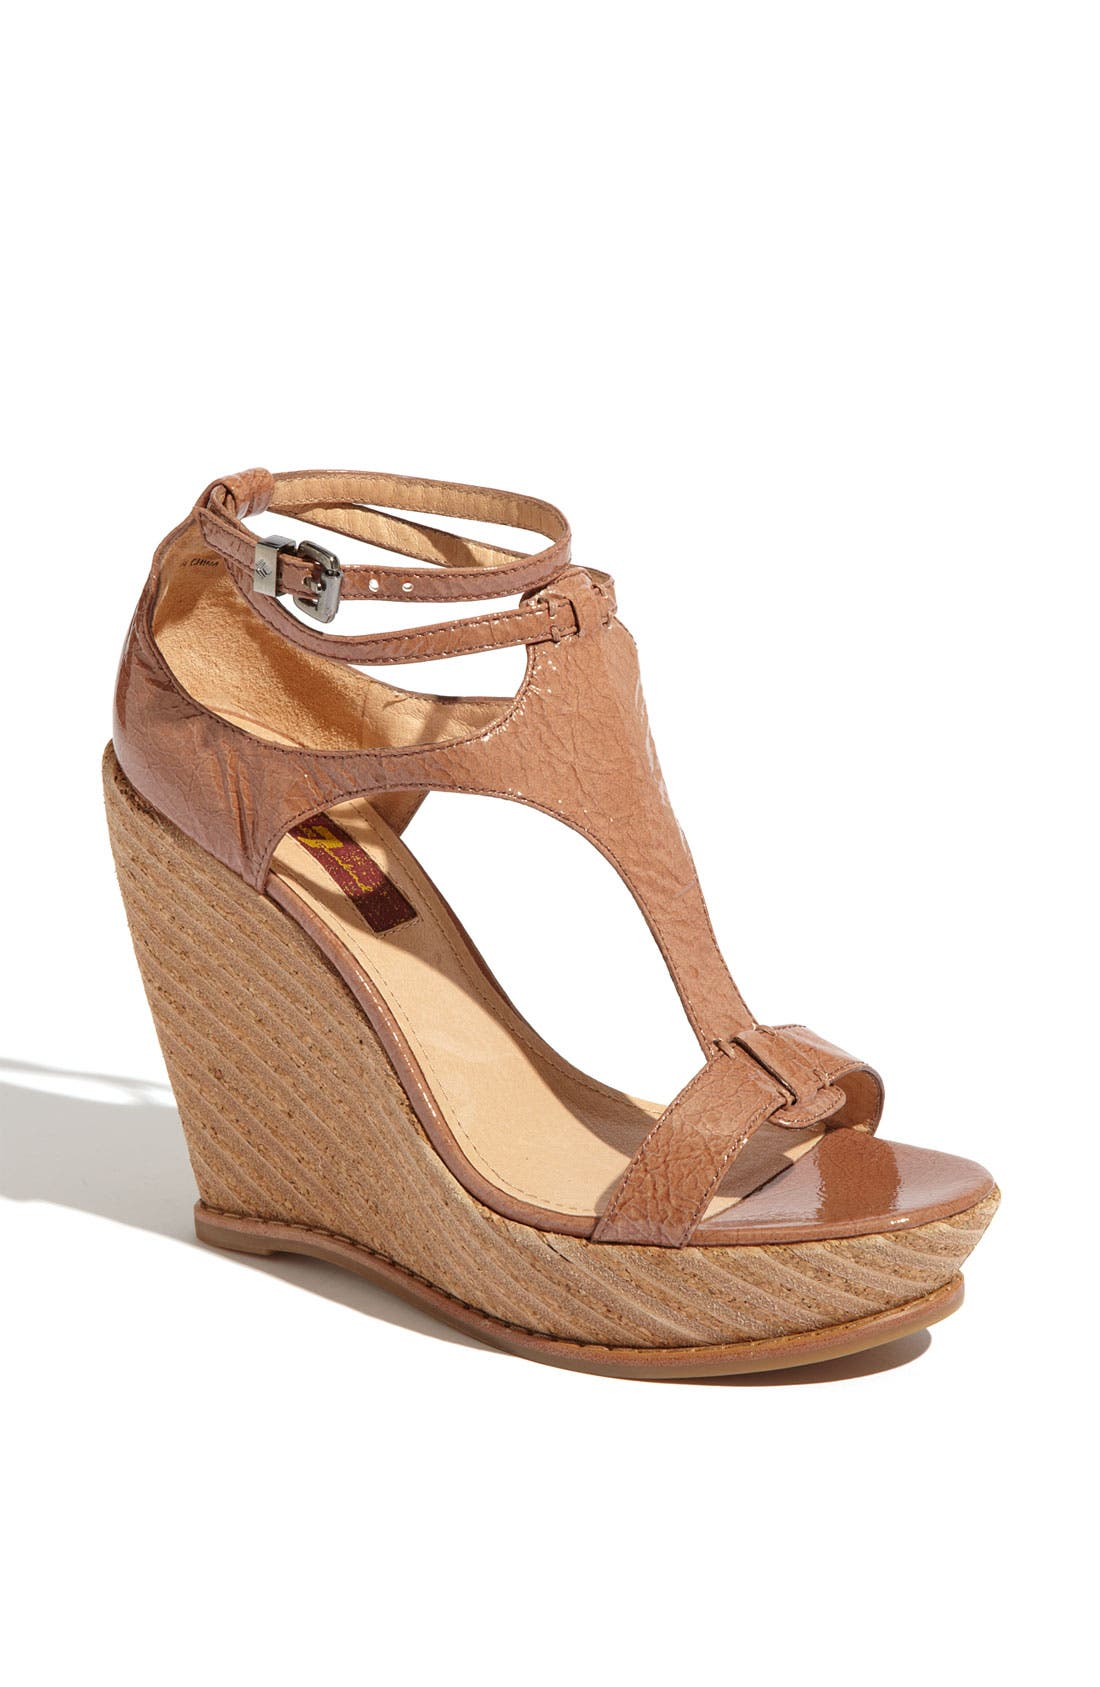 Main Image - 7 For All Mankind® 'Rayn' Wedge Sandal